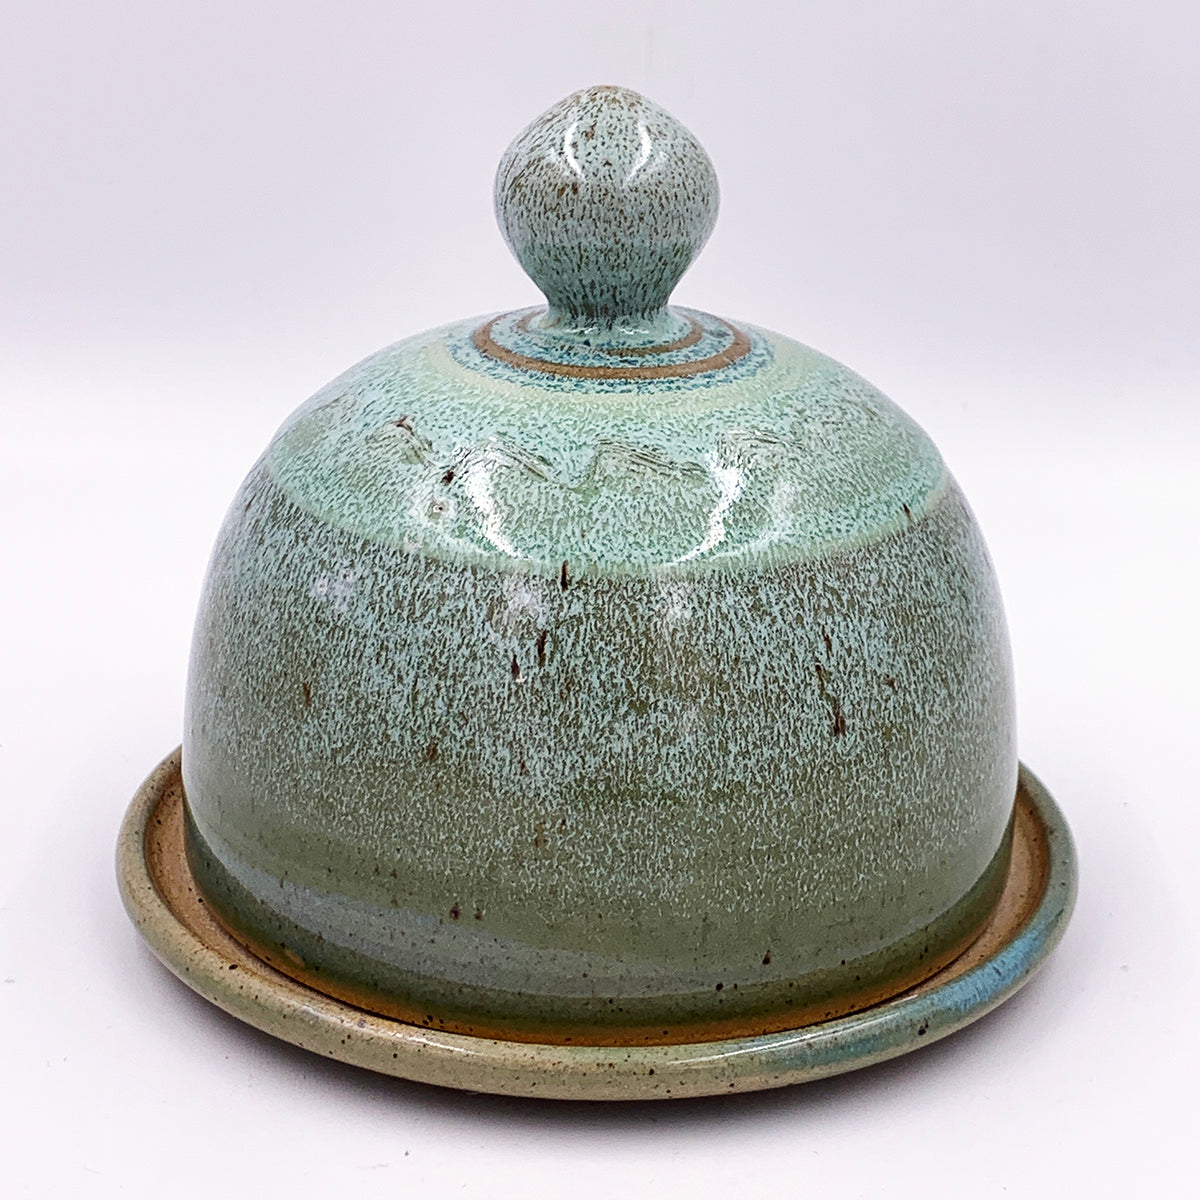 Silt over Moss Domed Butter Dish